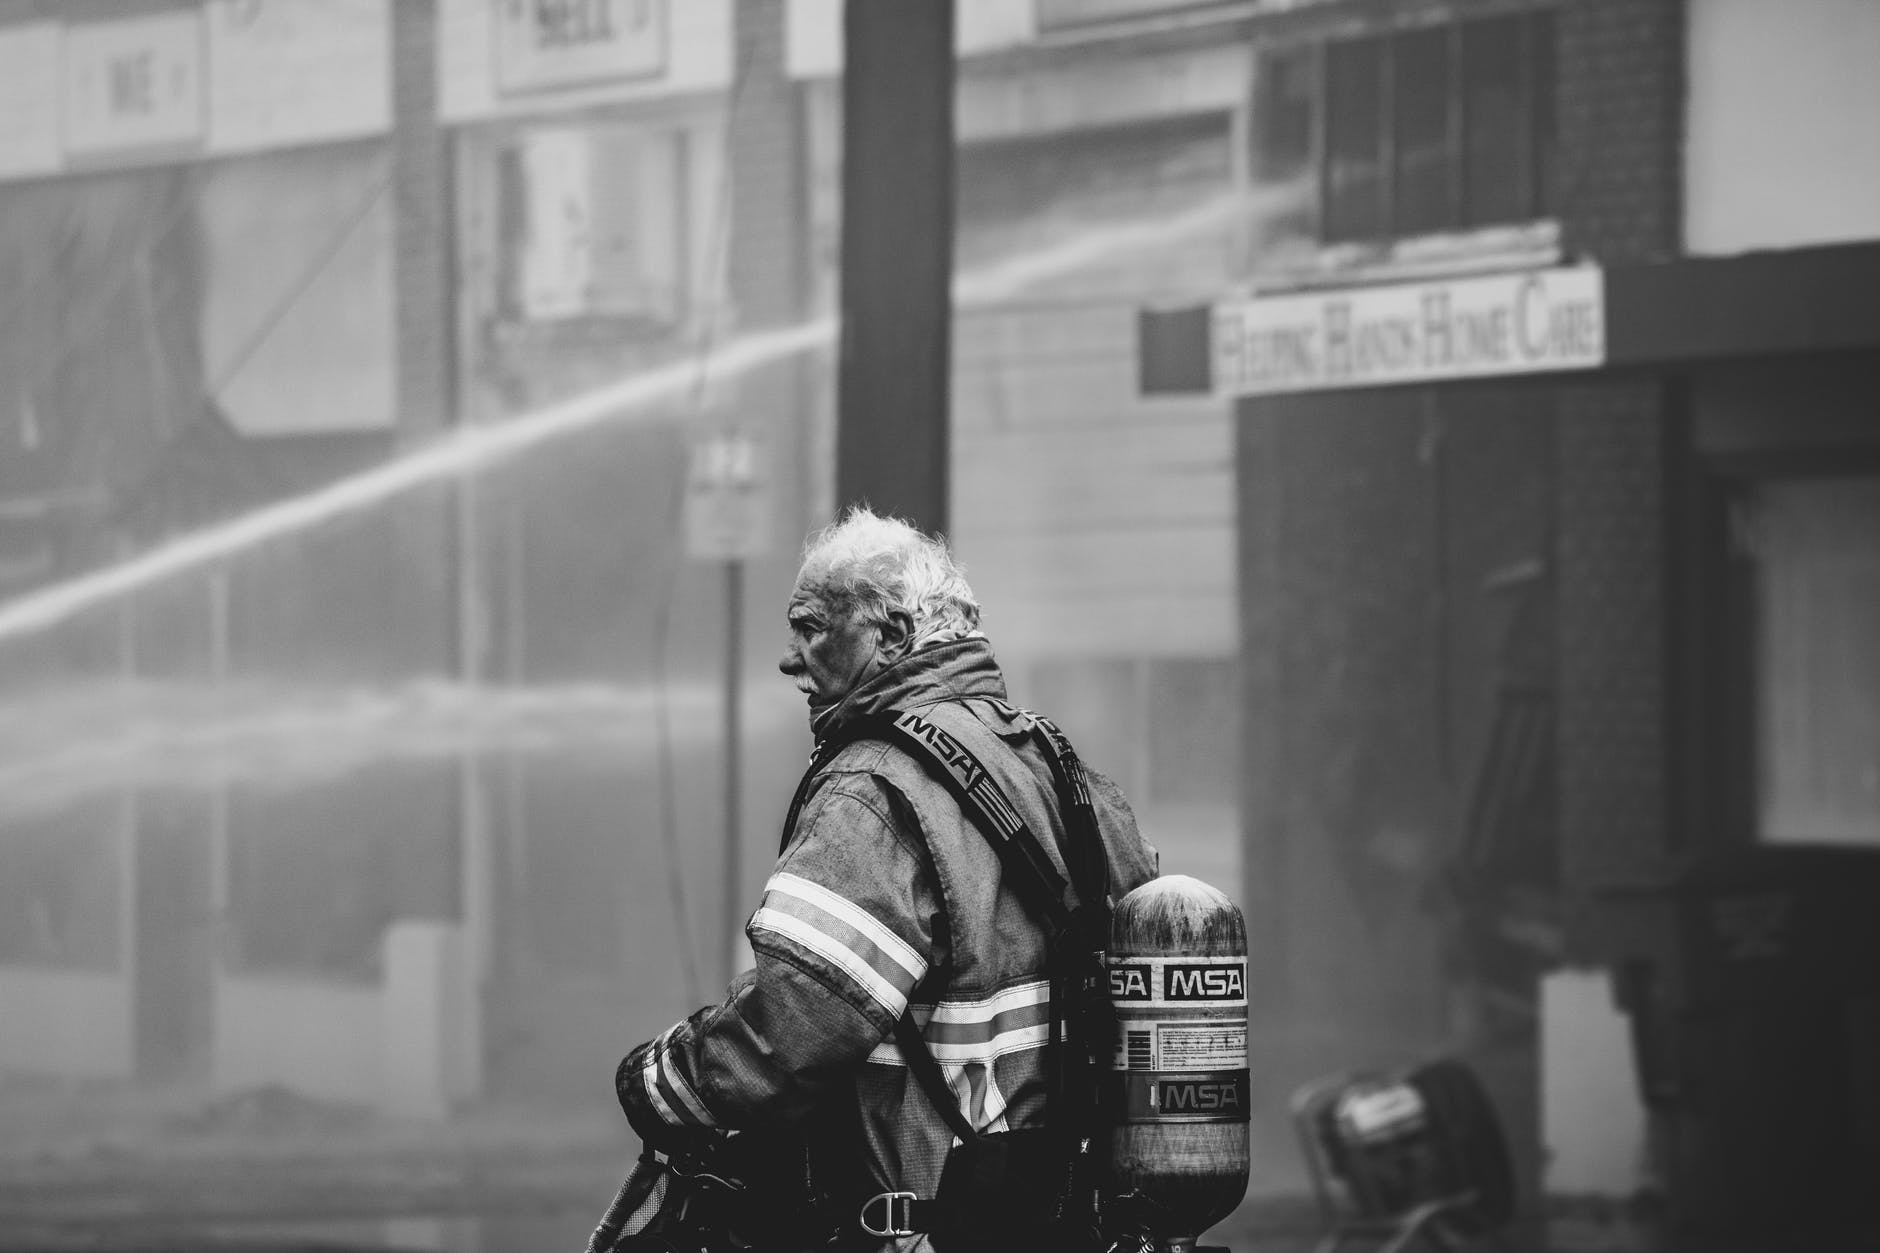 A firefighter.   Source: Pexels